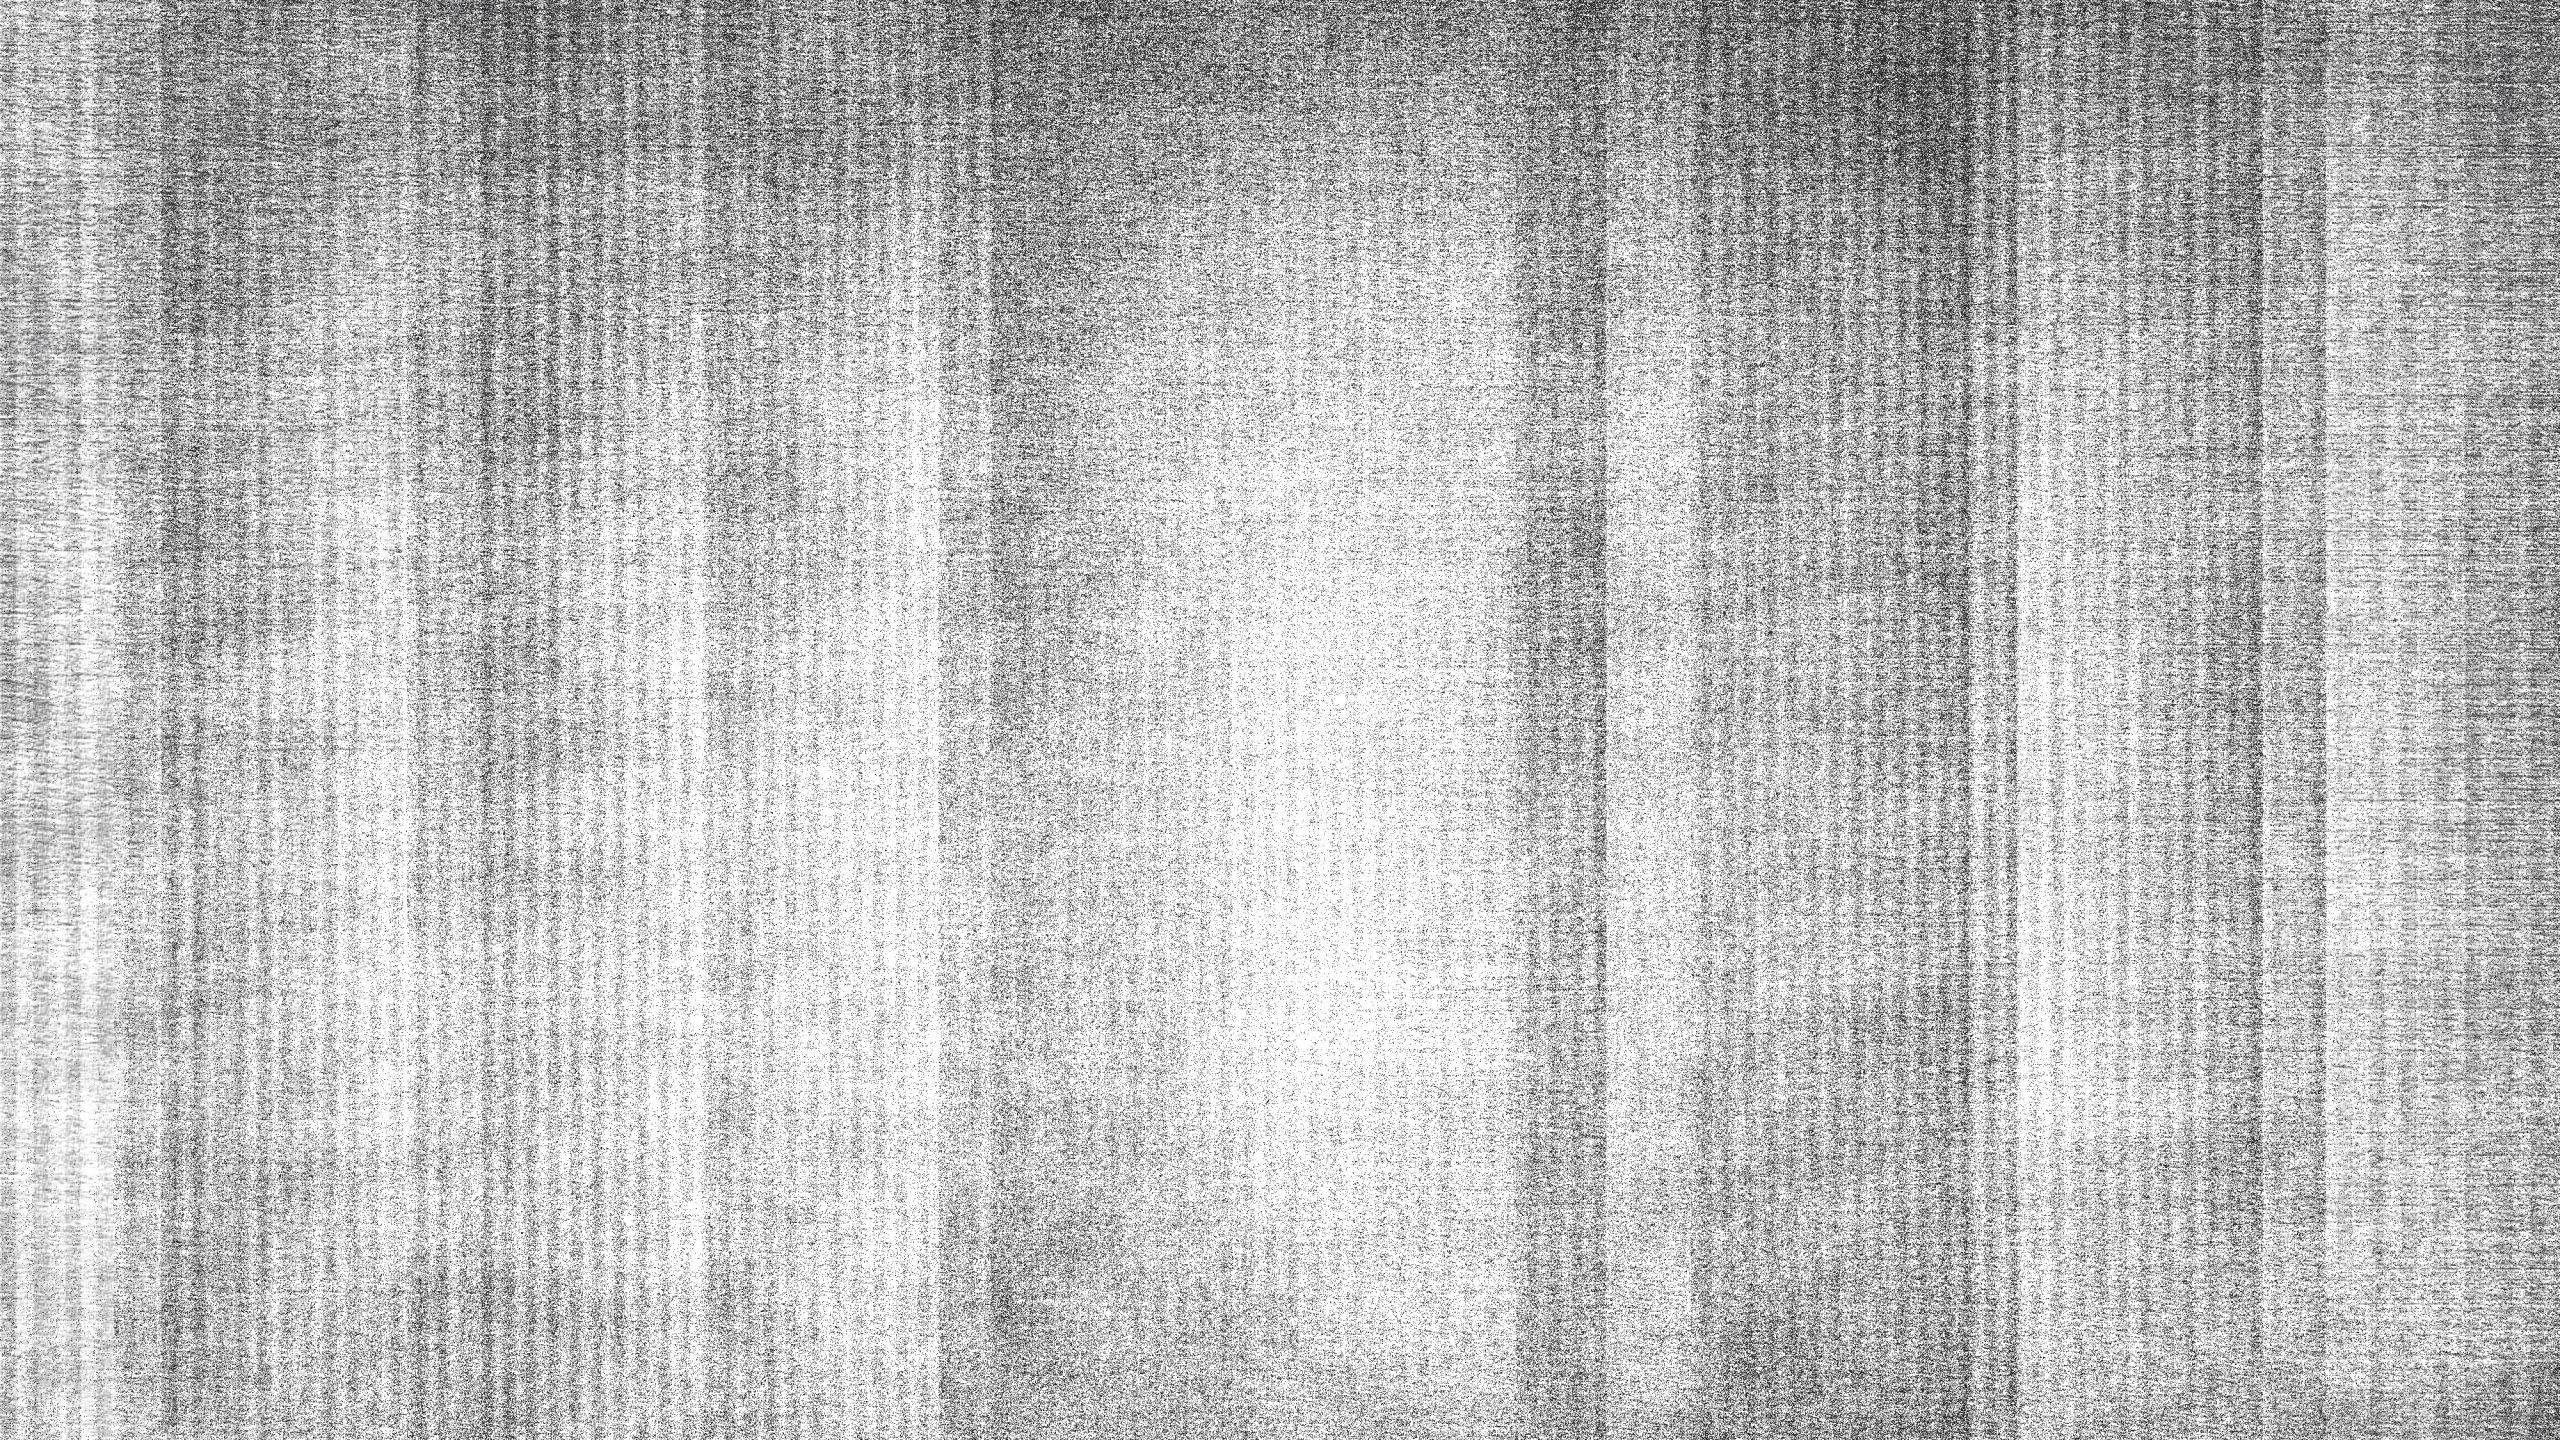 White and black texture wallpaper